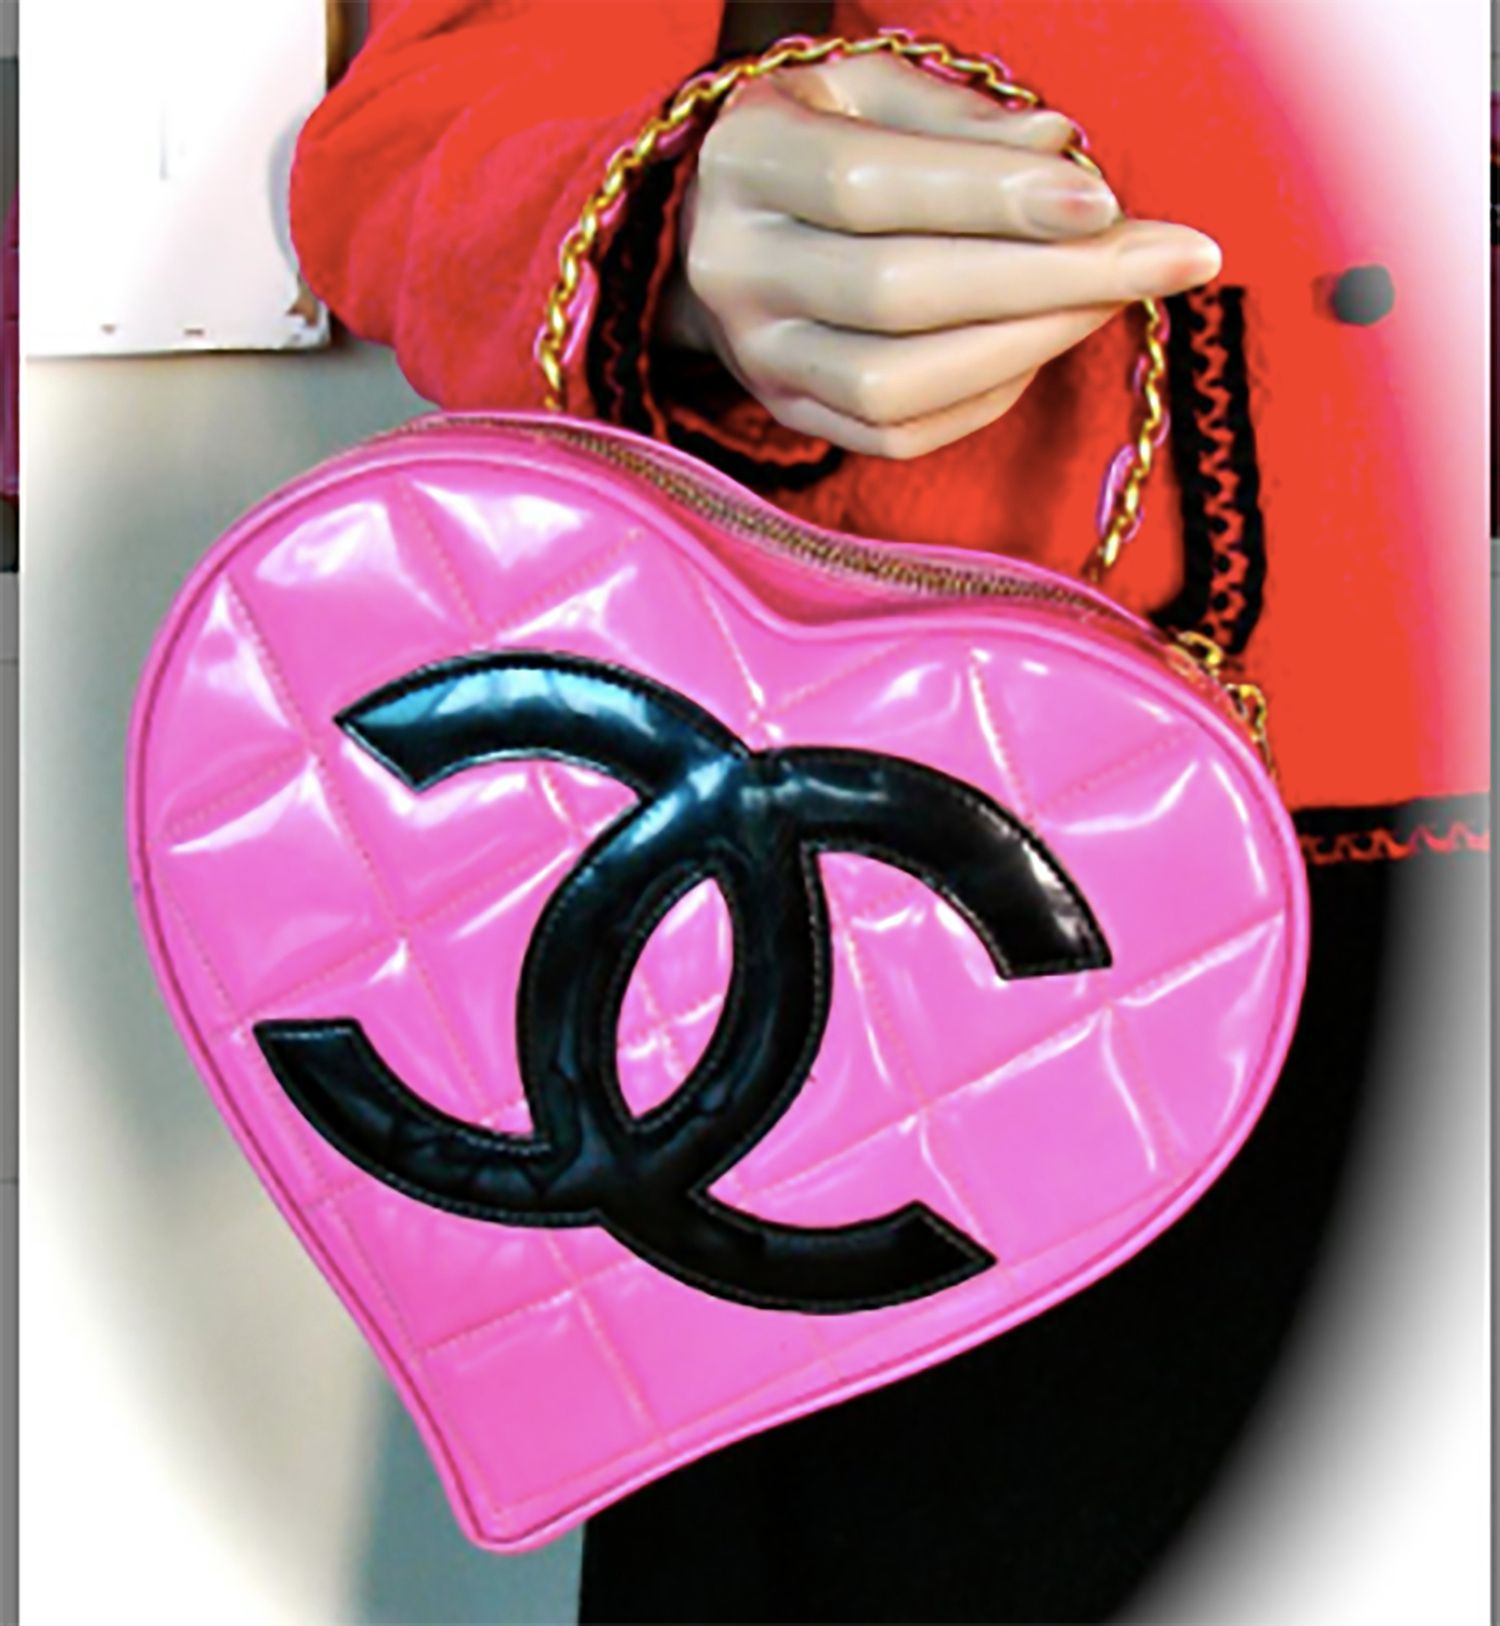 Throwback to this fab quilted heart bag by Chanel